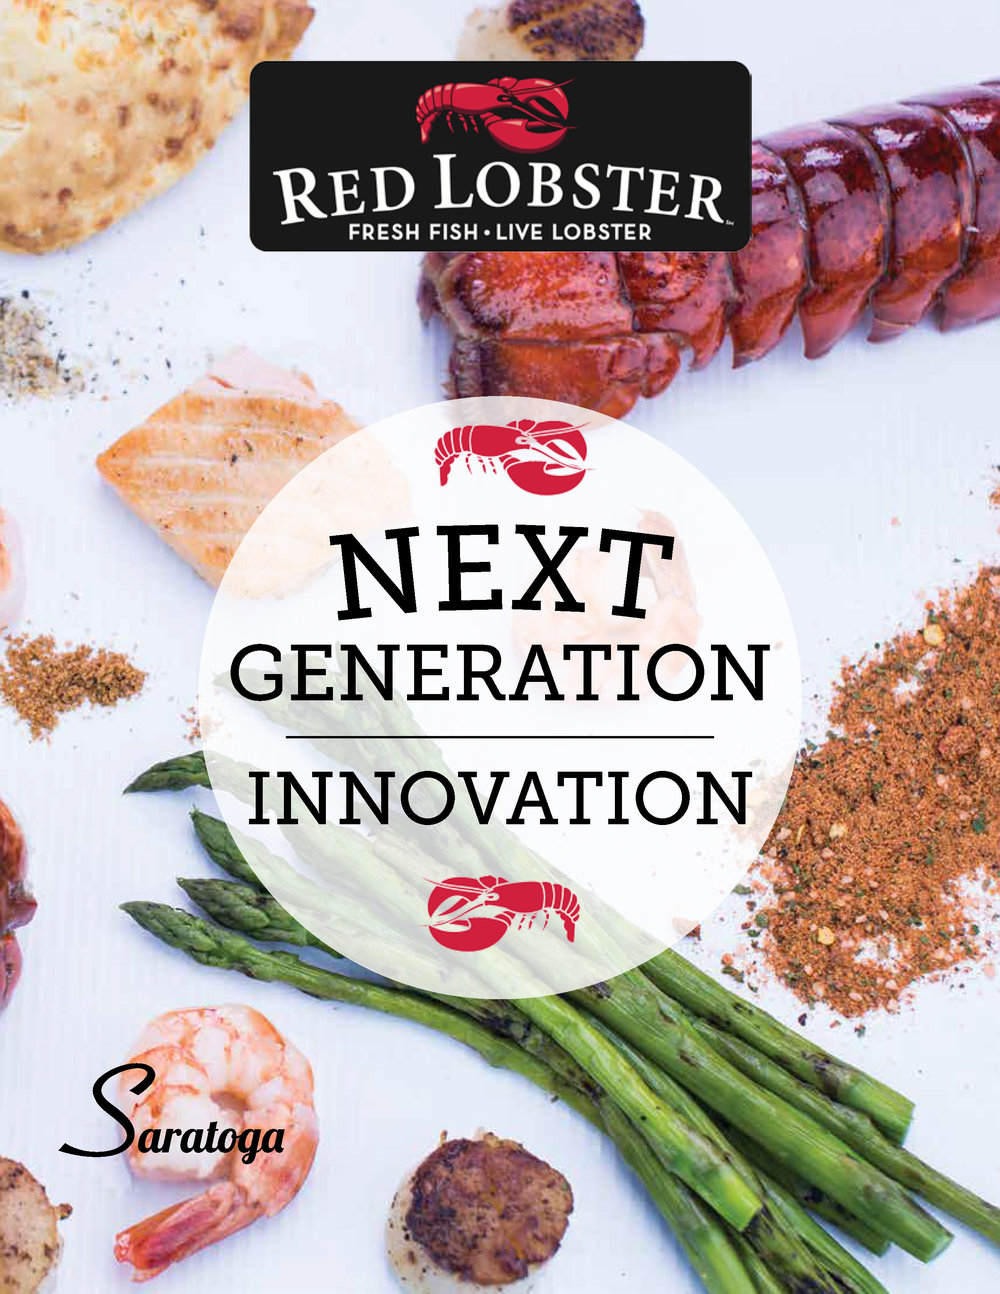 RED LOBSTER MAGAZINE